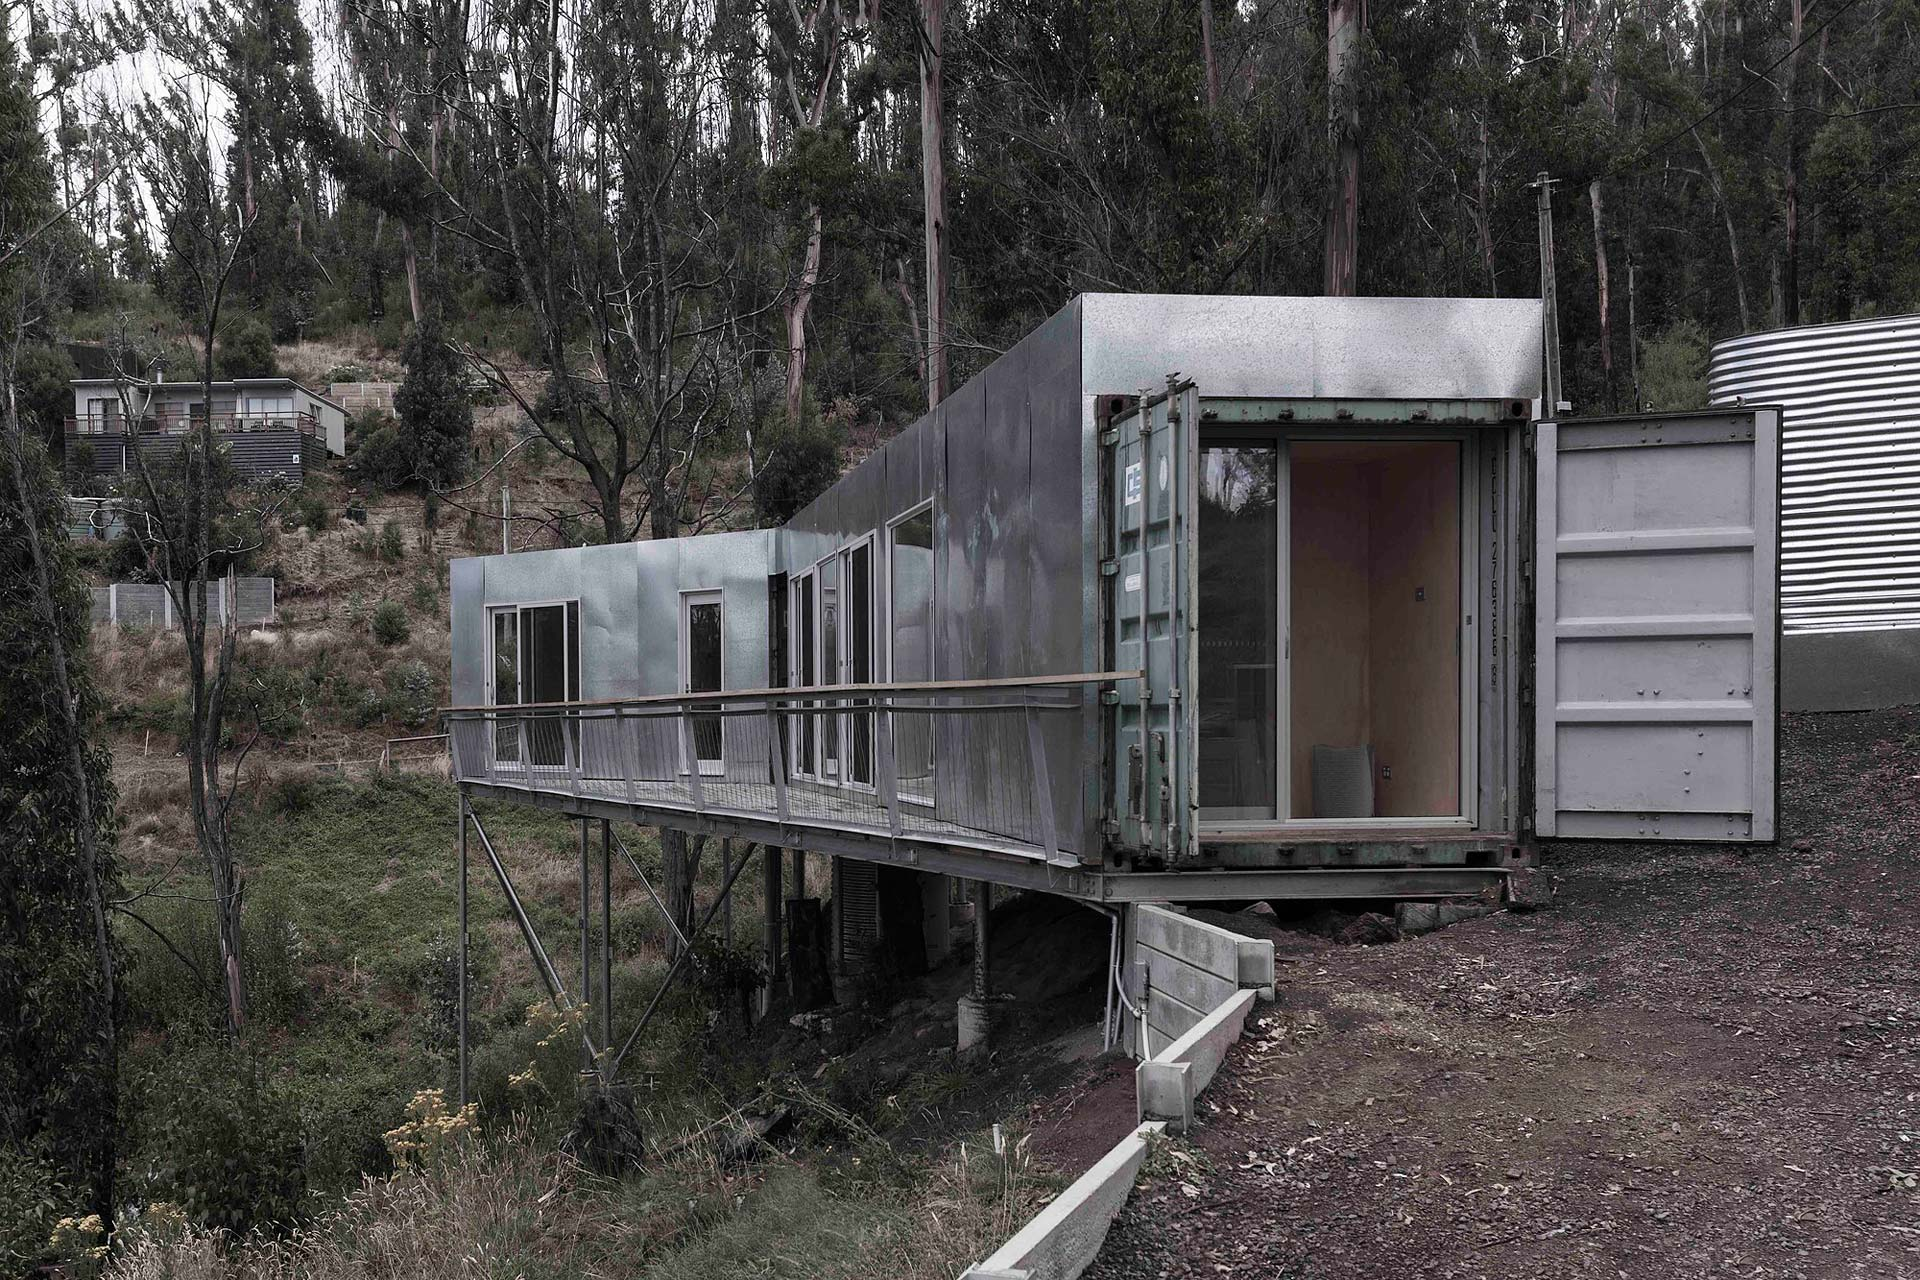 wye-river-container-house-5.jpg